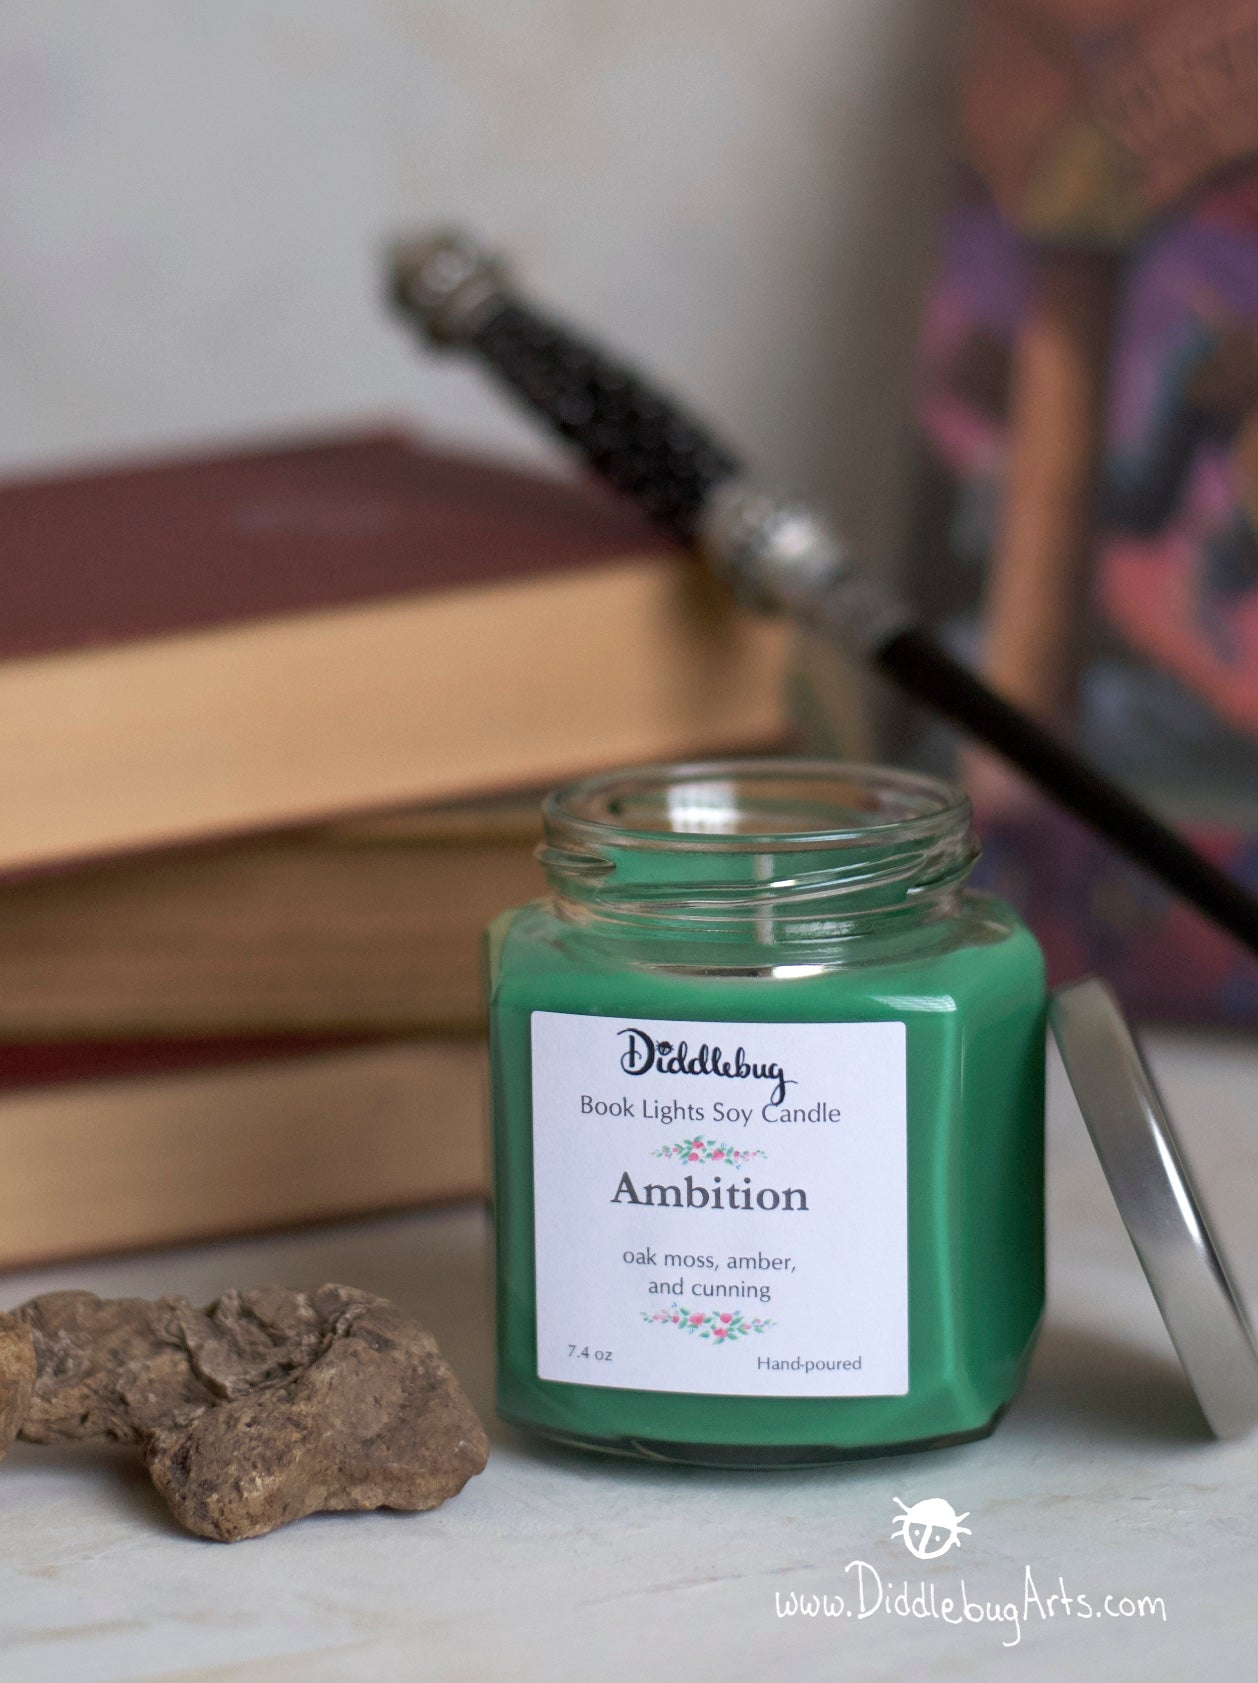 soy candle with scent based on Harry Potter books